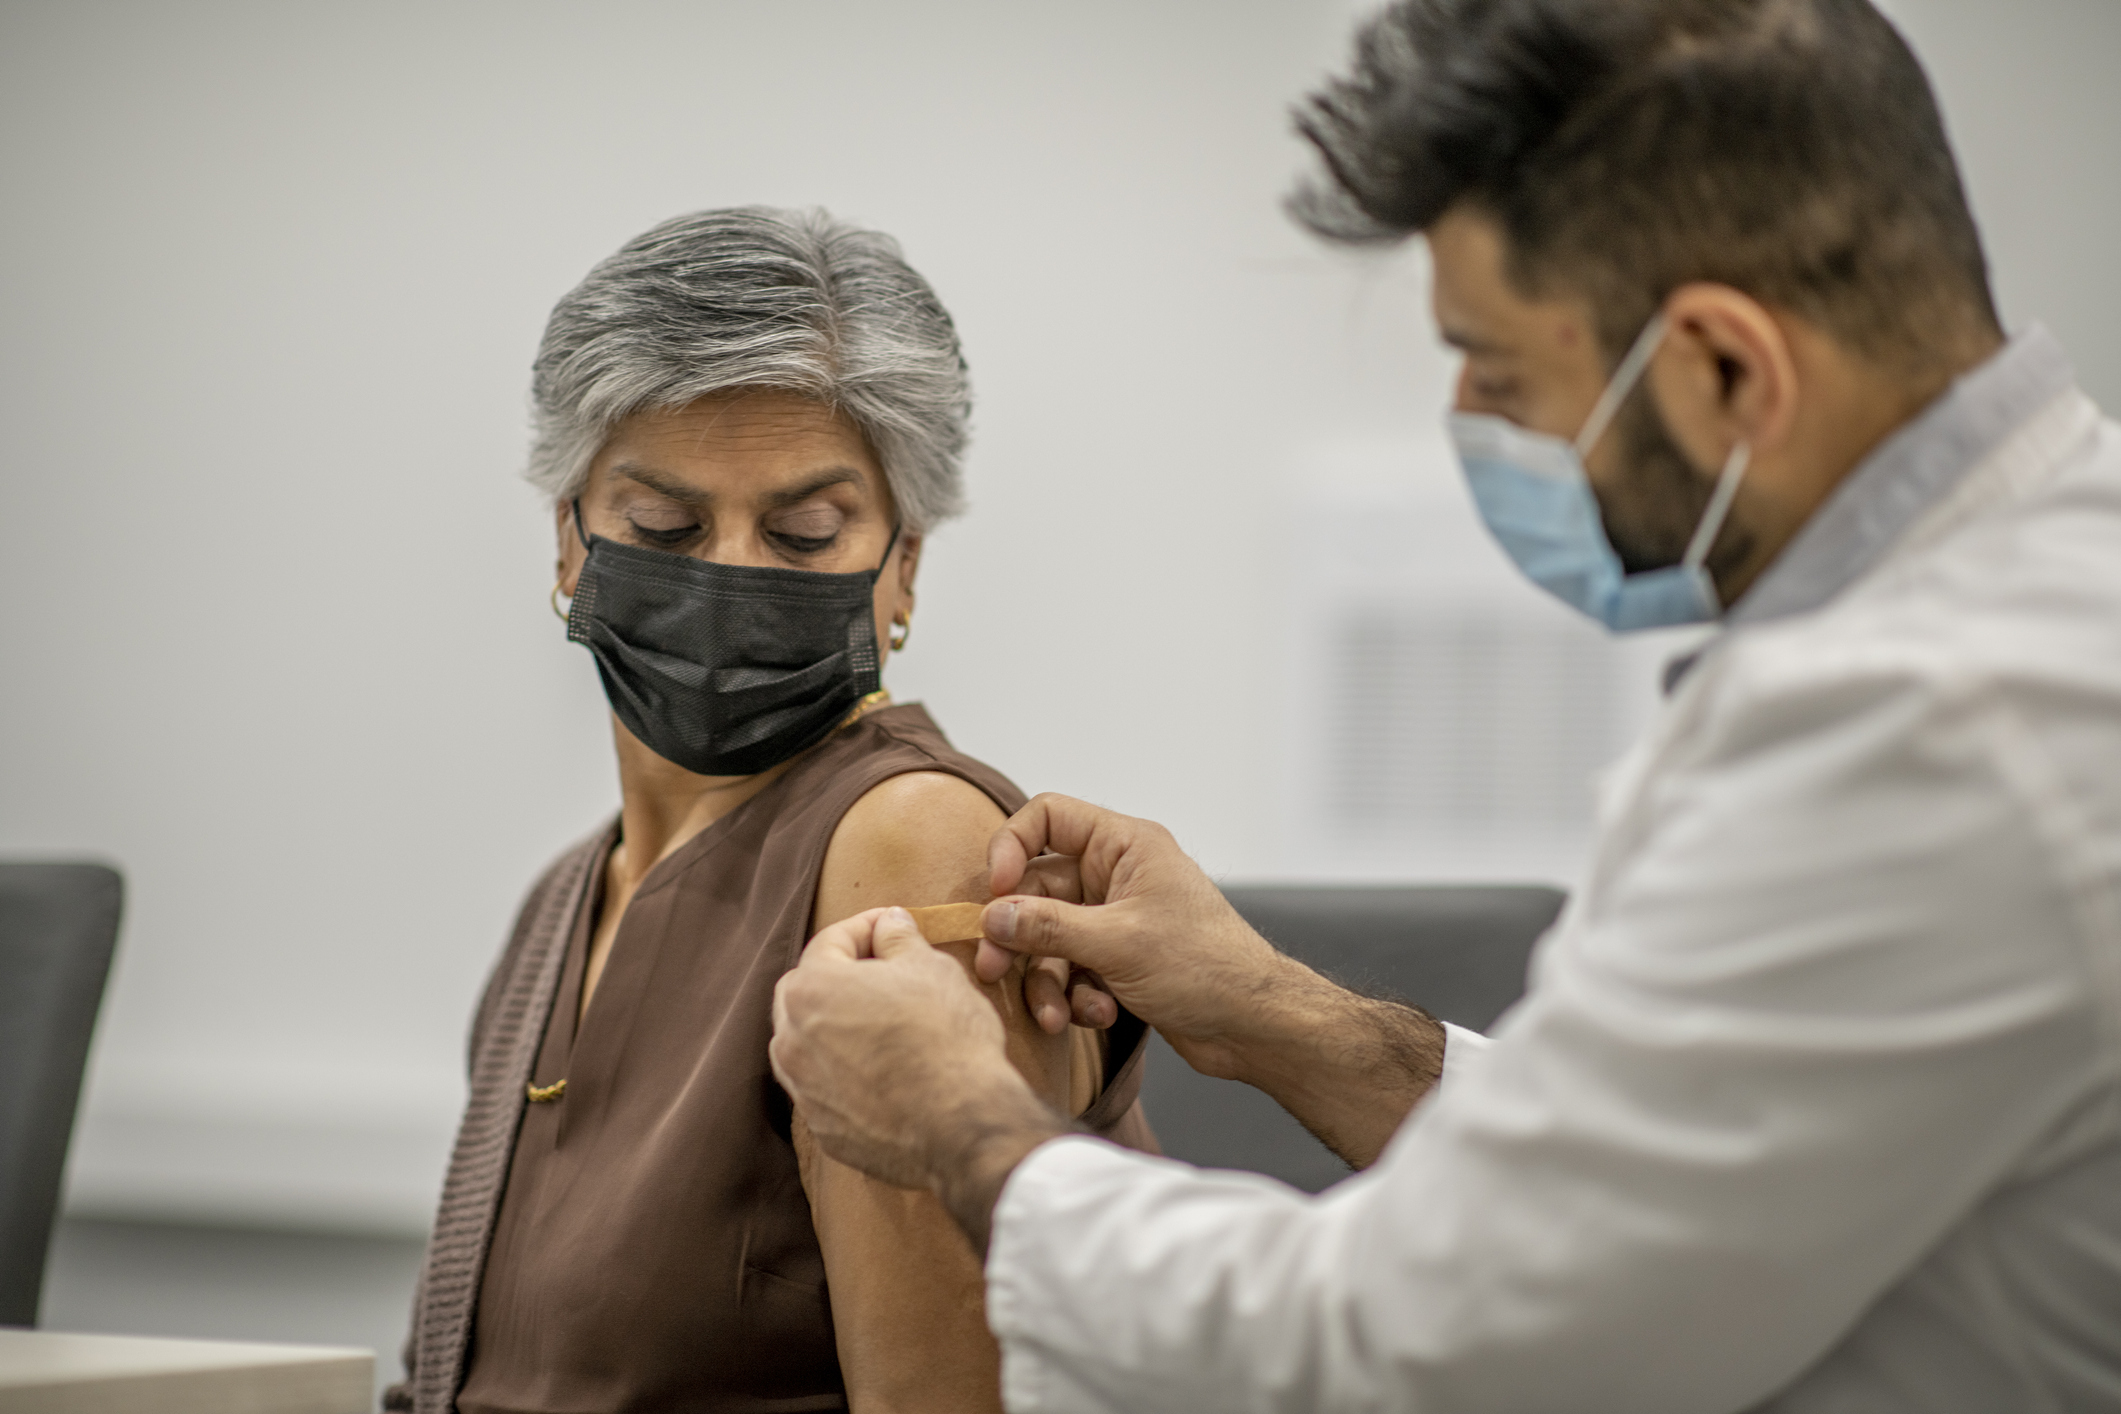 A male doctor puts a bandaid on an older woman's arm upper after administering a COVID-19 vaccine